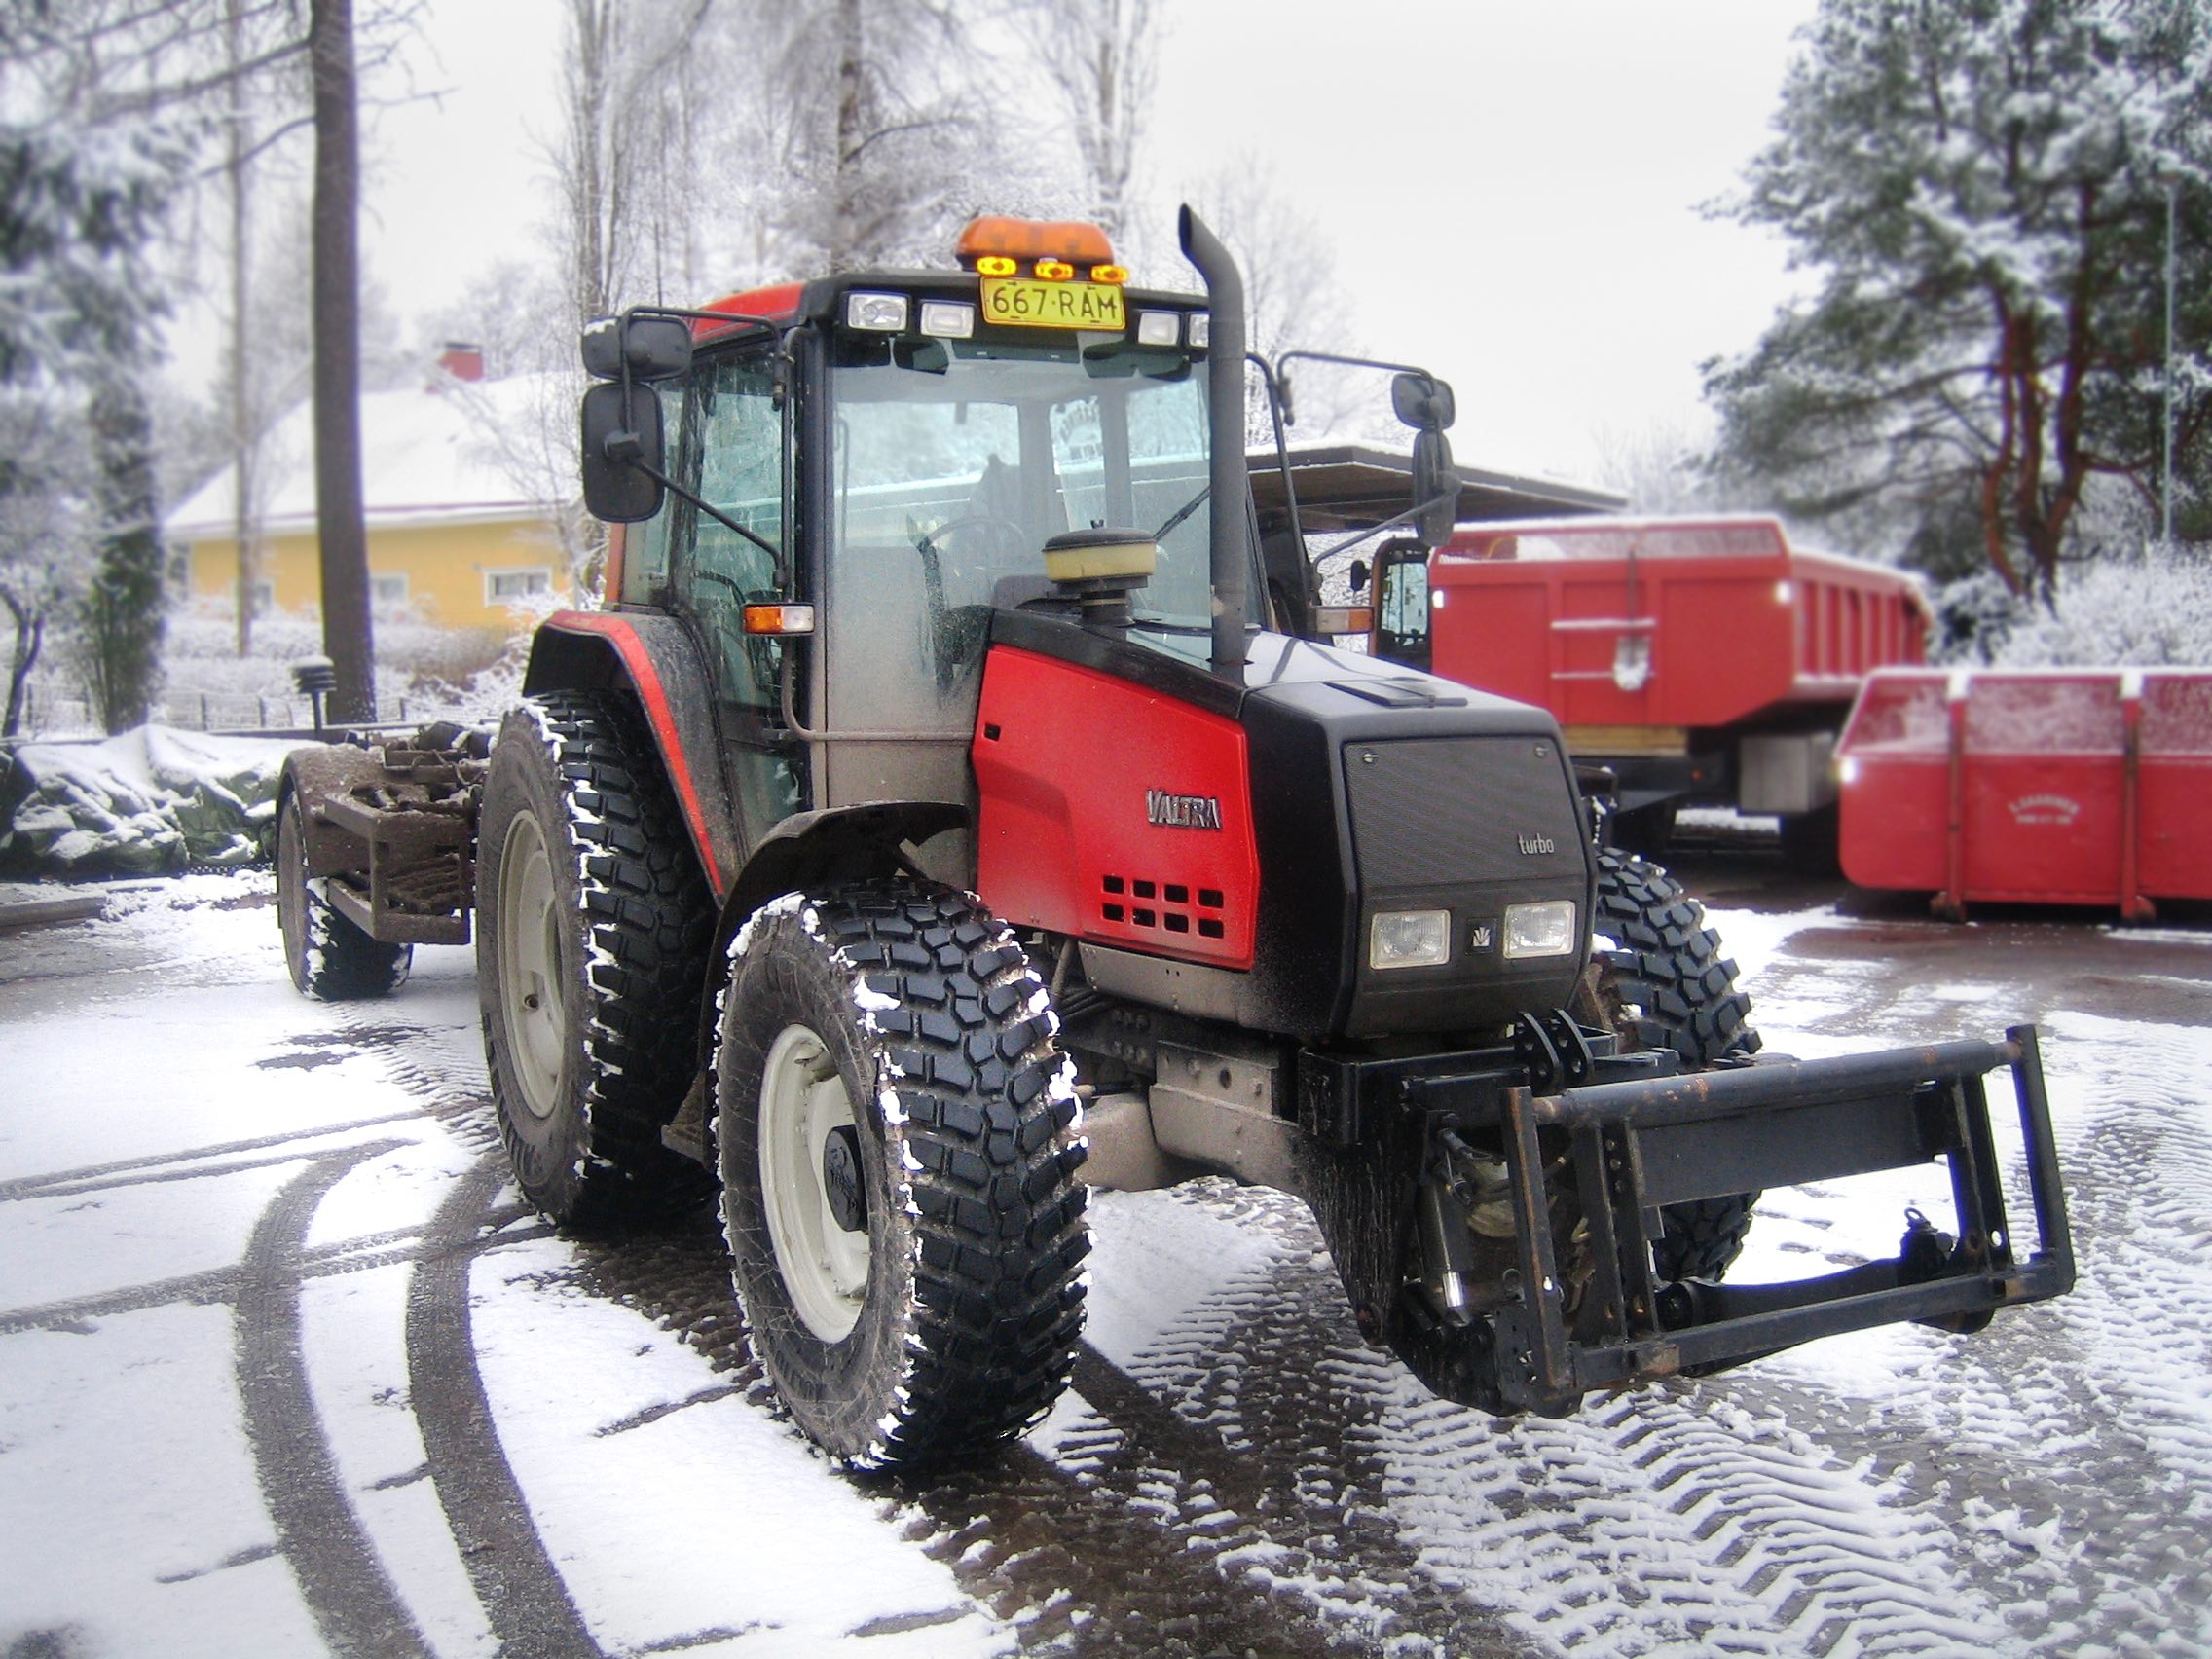 Alliance_Multiuse_550_on_Red_Tractor.jpg